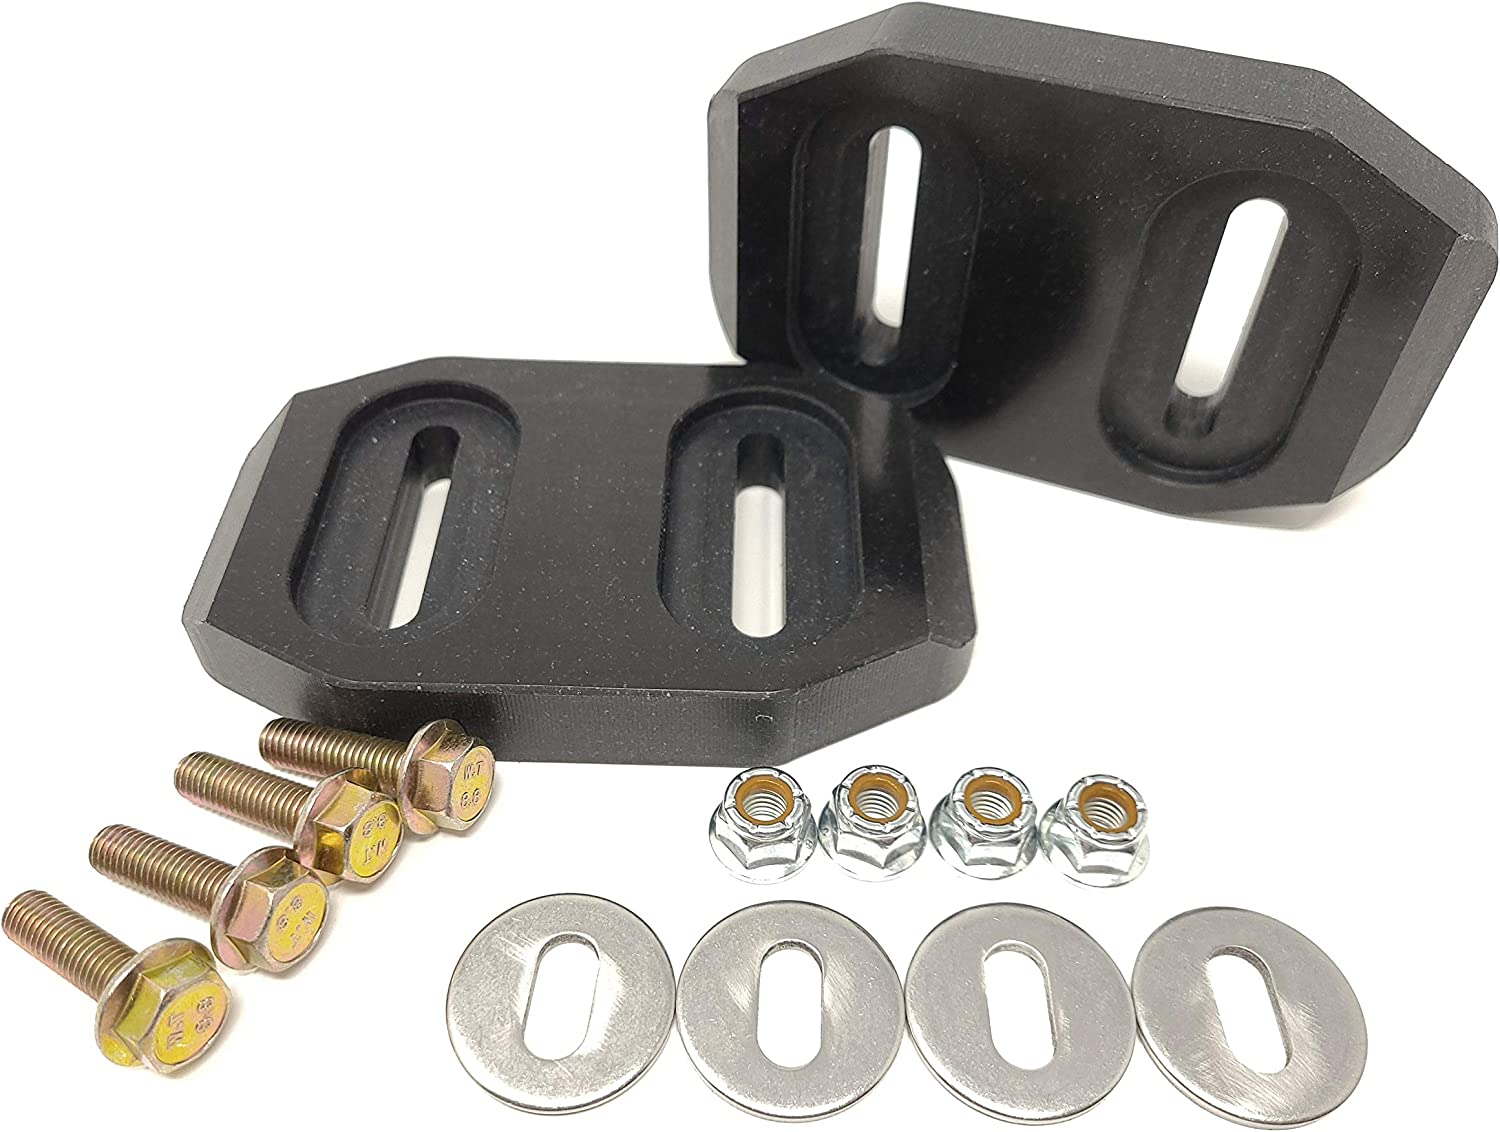 Detroit Thermo Replacement for Honda Max Max 74% OFF 70% OFF Shoes HSS N Skid snowblower